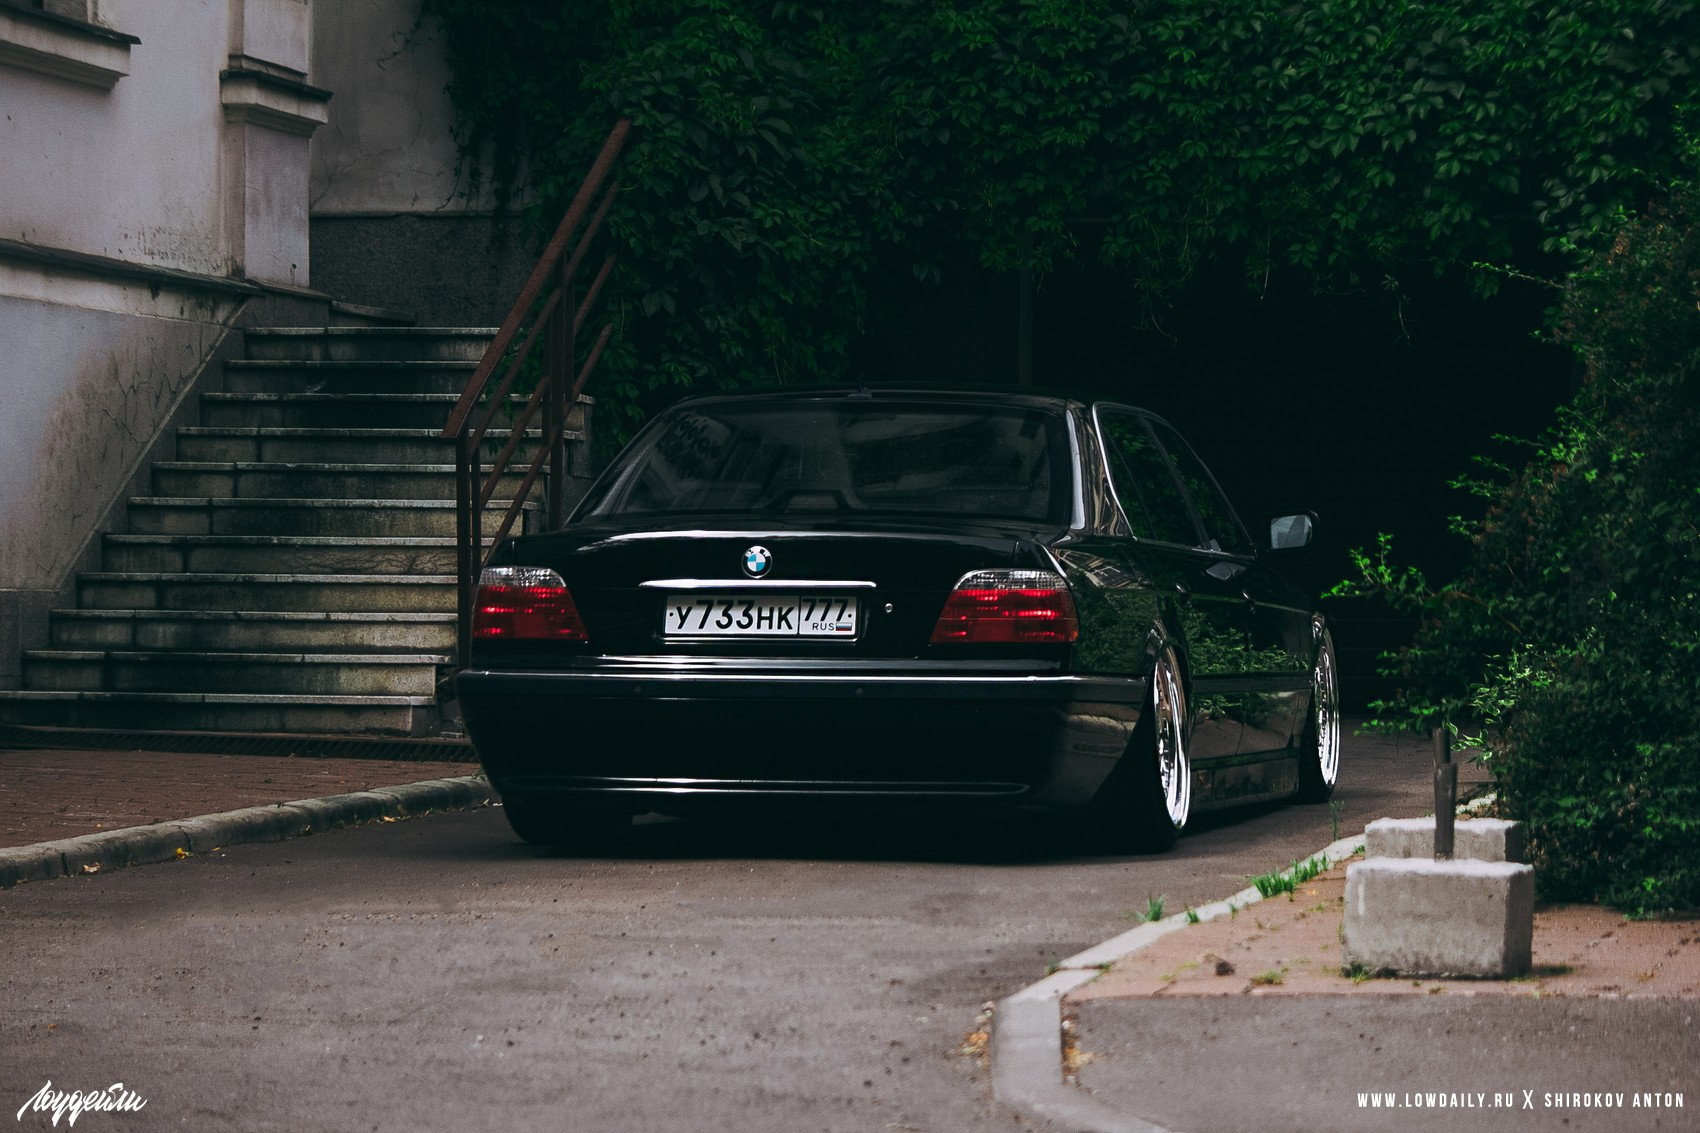 BMW E38 Lowdaily _MG_7121